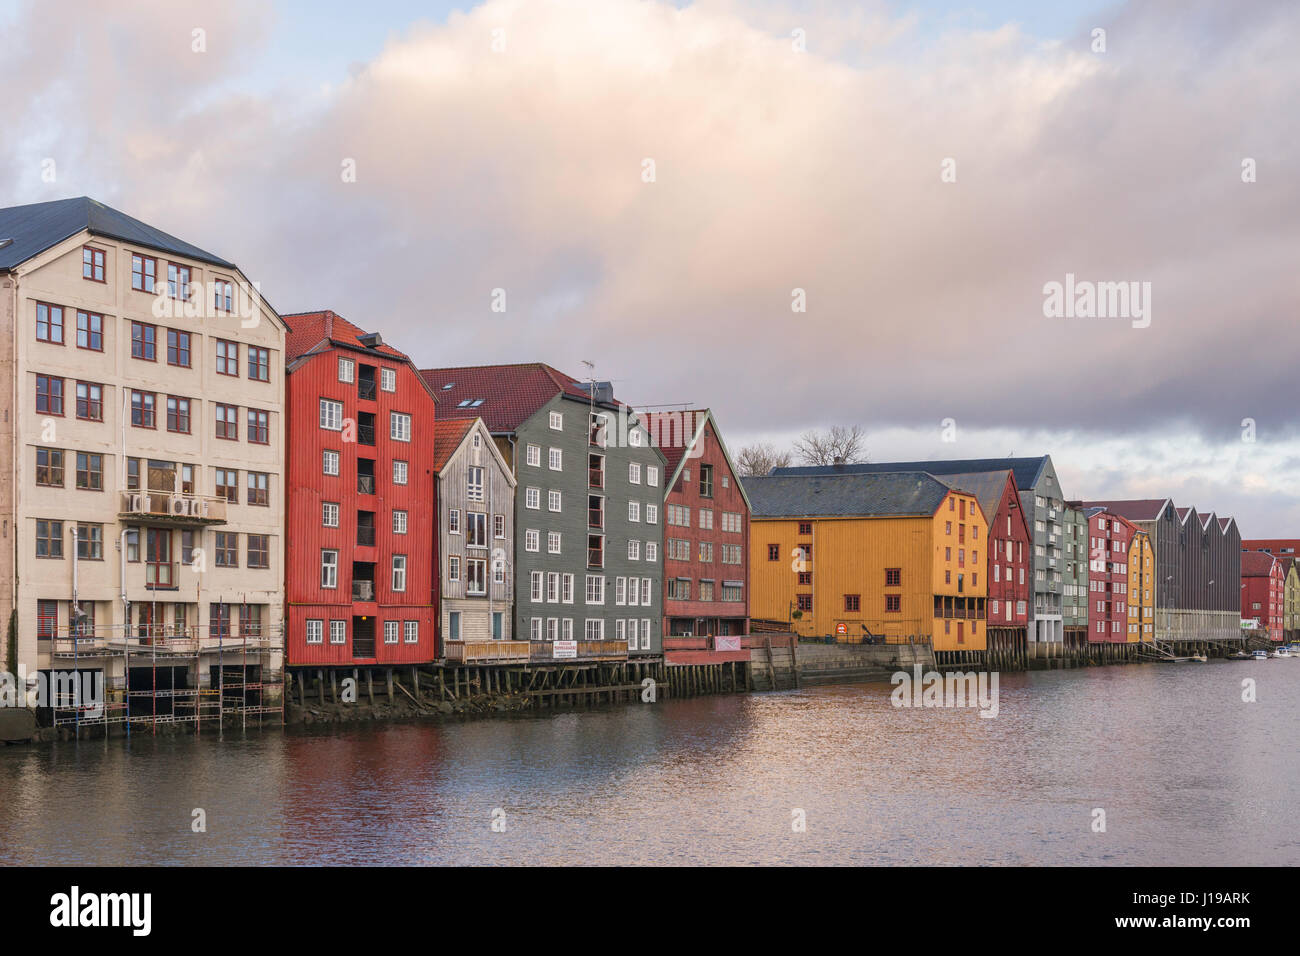 Traditional warehouses line the sides of the Nidelva River as it flows through Trondheim, Norway. - Stock Image